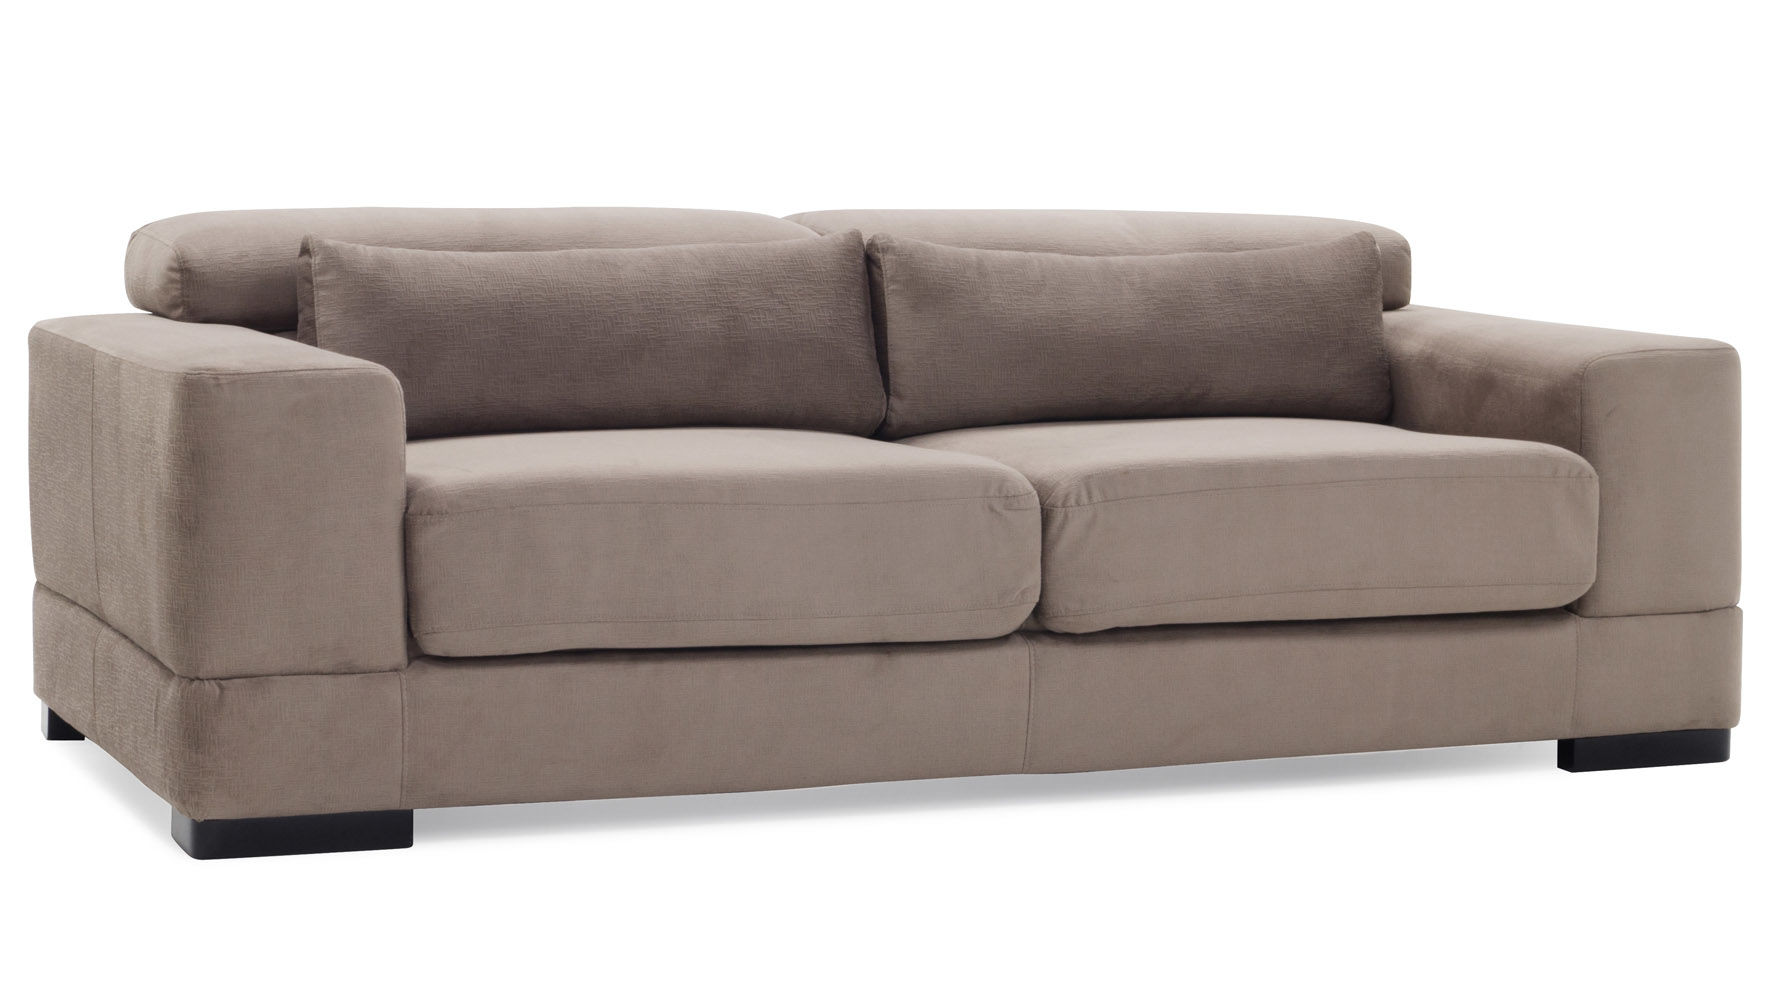 fresh pull out sleeper sofa picture-Superb Pull Out Sleeper sofa Layout